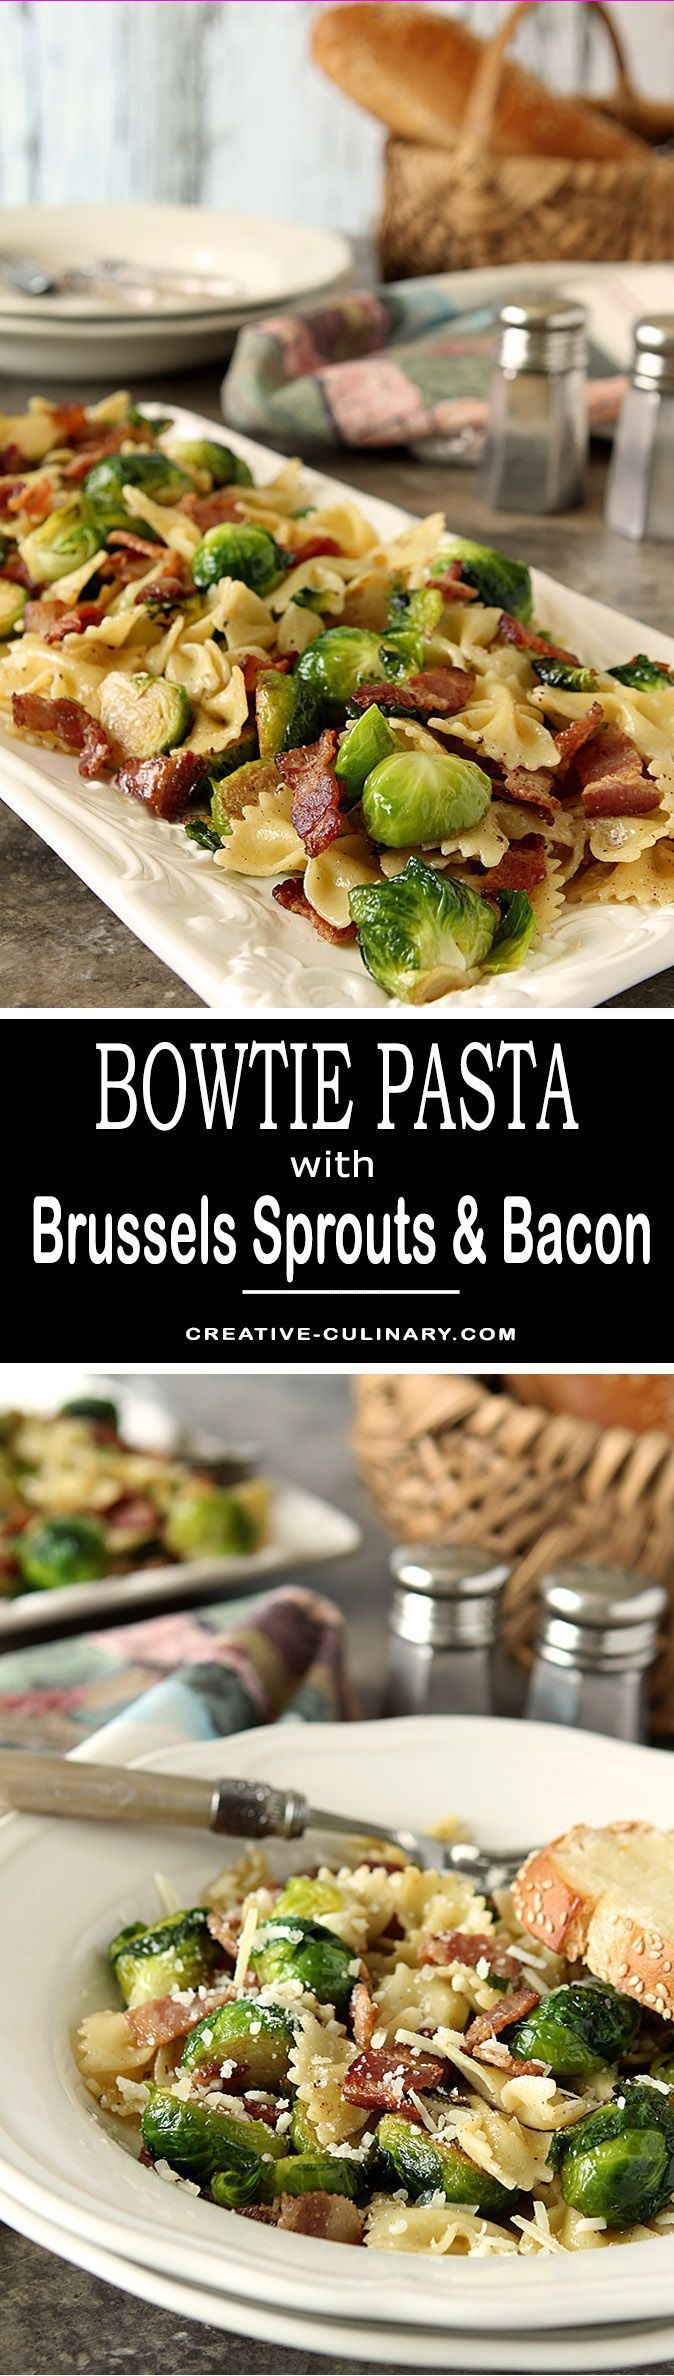 Bacon and Brussels Sprouts with Bowtie Pasta from 'The Weeknight Dinner' cookbook by Mary Younkin. via @creativculinary